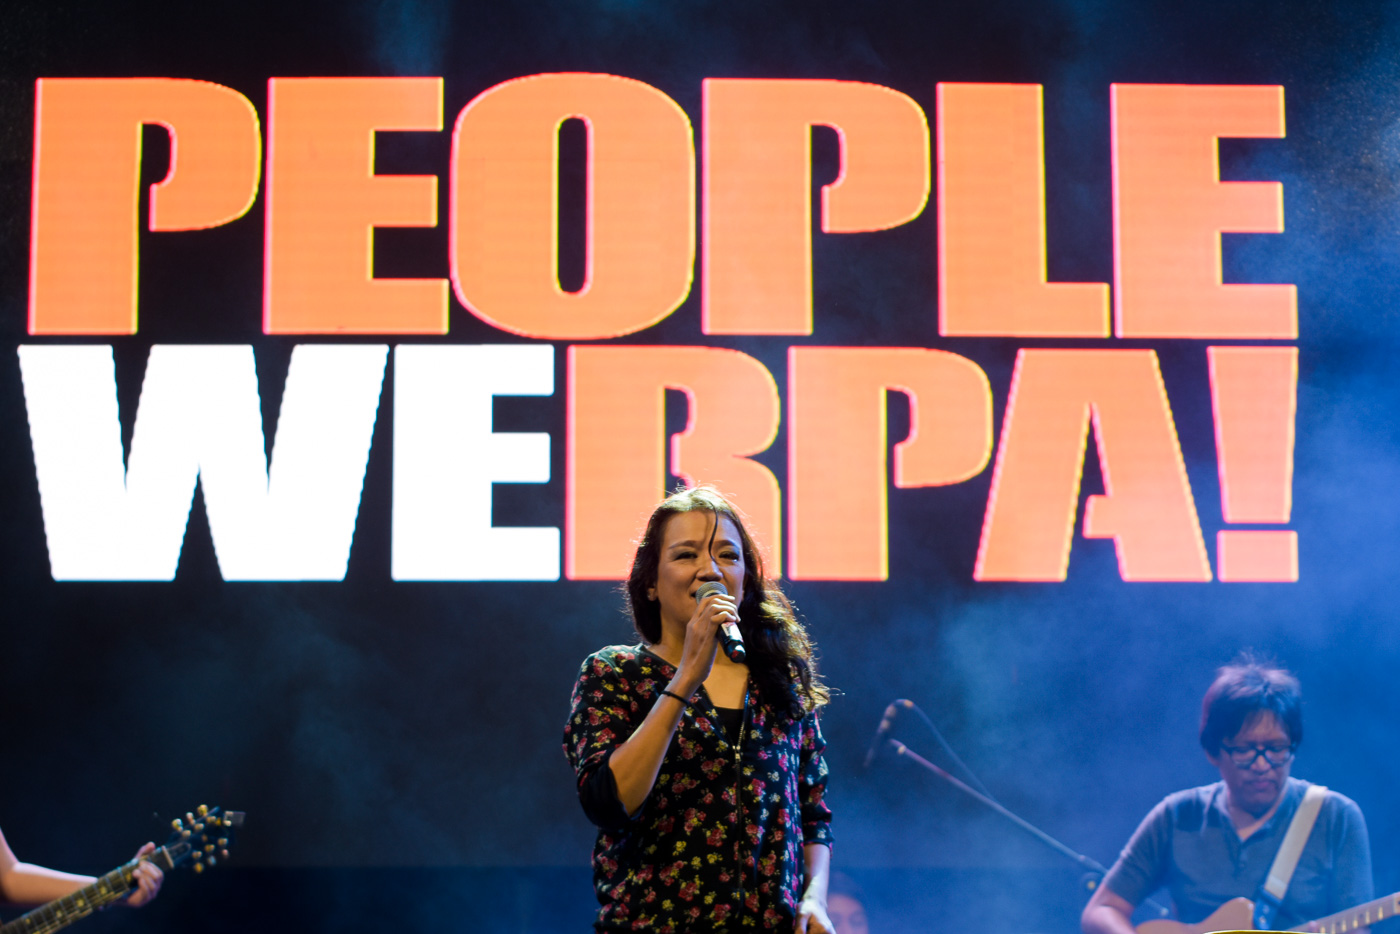 WERPA. Color It Red's Cookie Chua sings during the event at Edsa in celebration of 32nd People Power Revolution. All photos by Leanne Jazul/Rappler